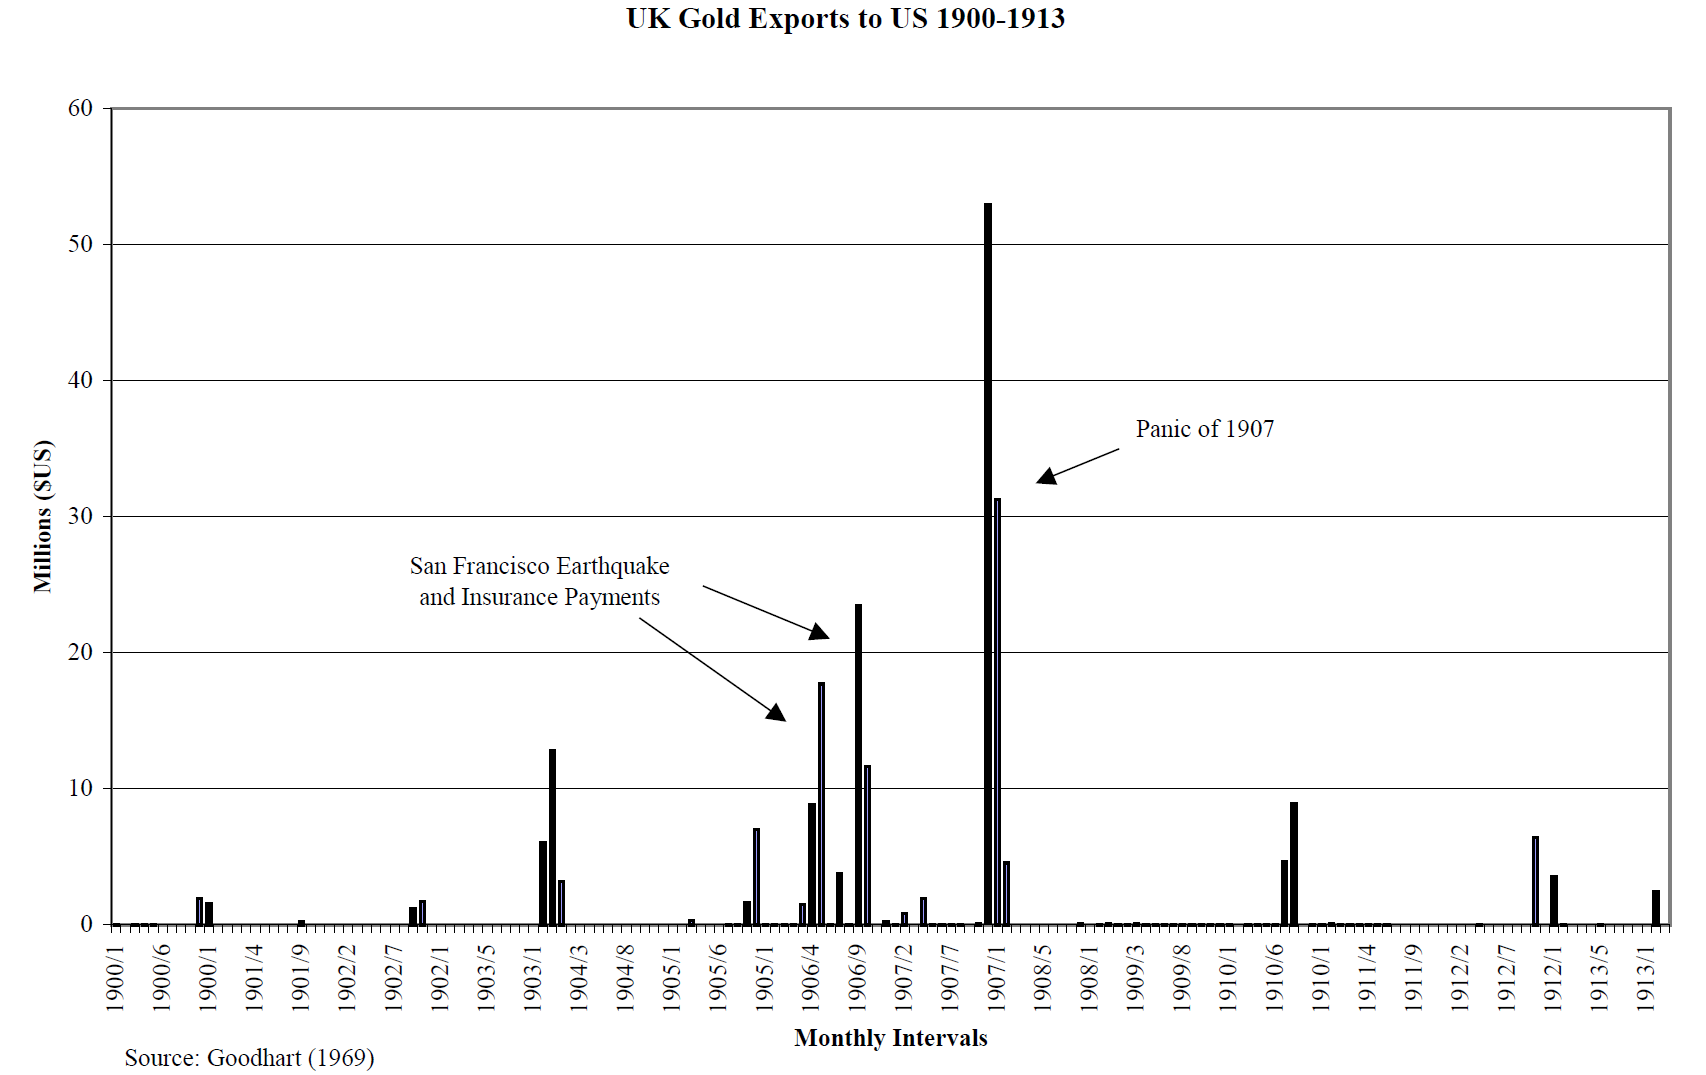 UK Gold Exports to US 1900-1913